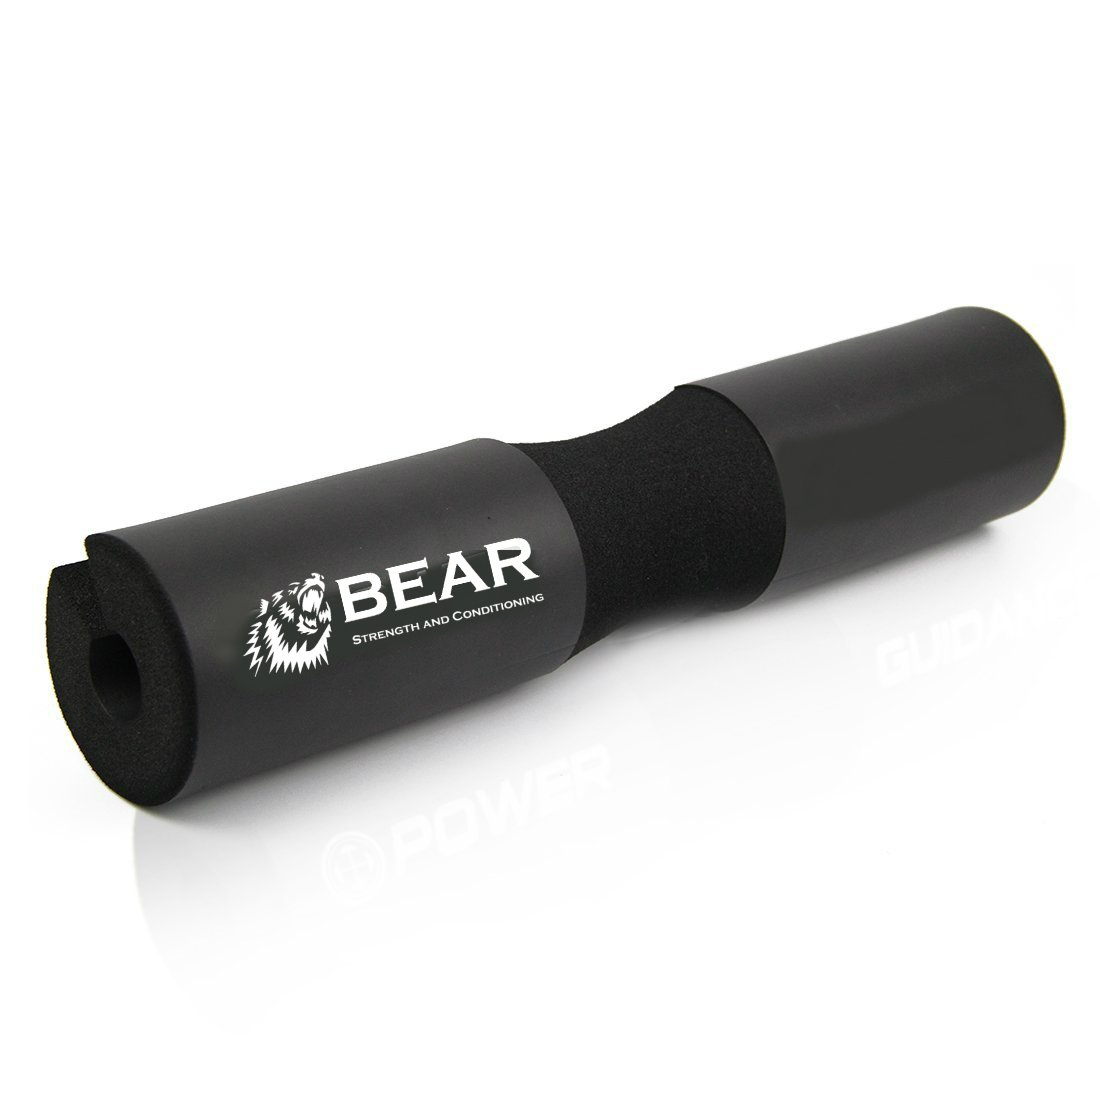 BEAR Next Gen Barbell Squat Pad